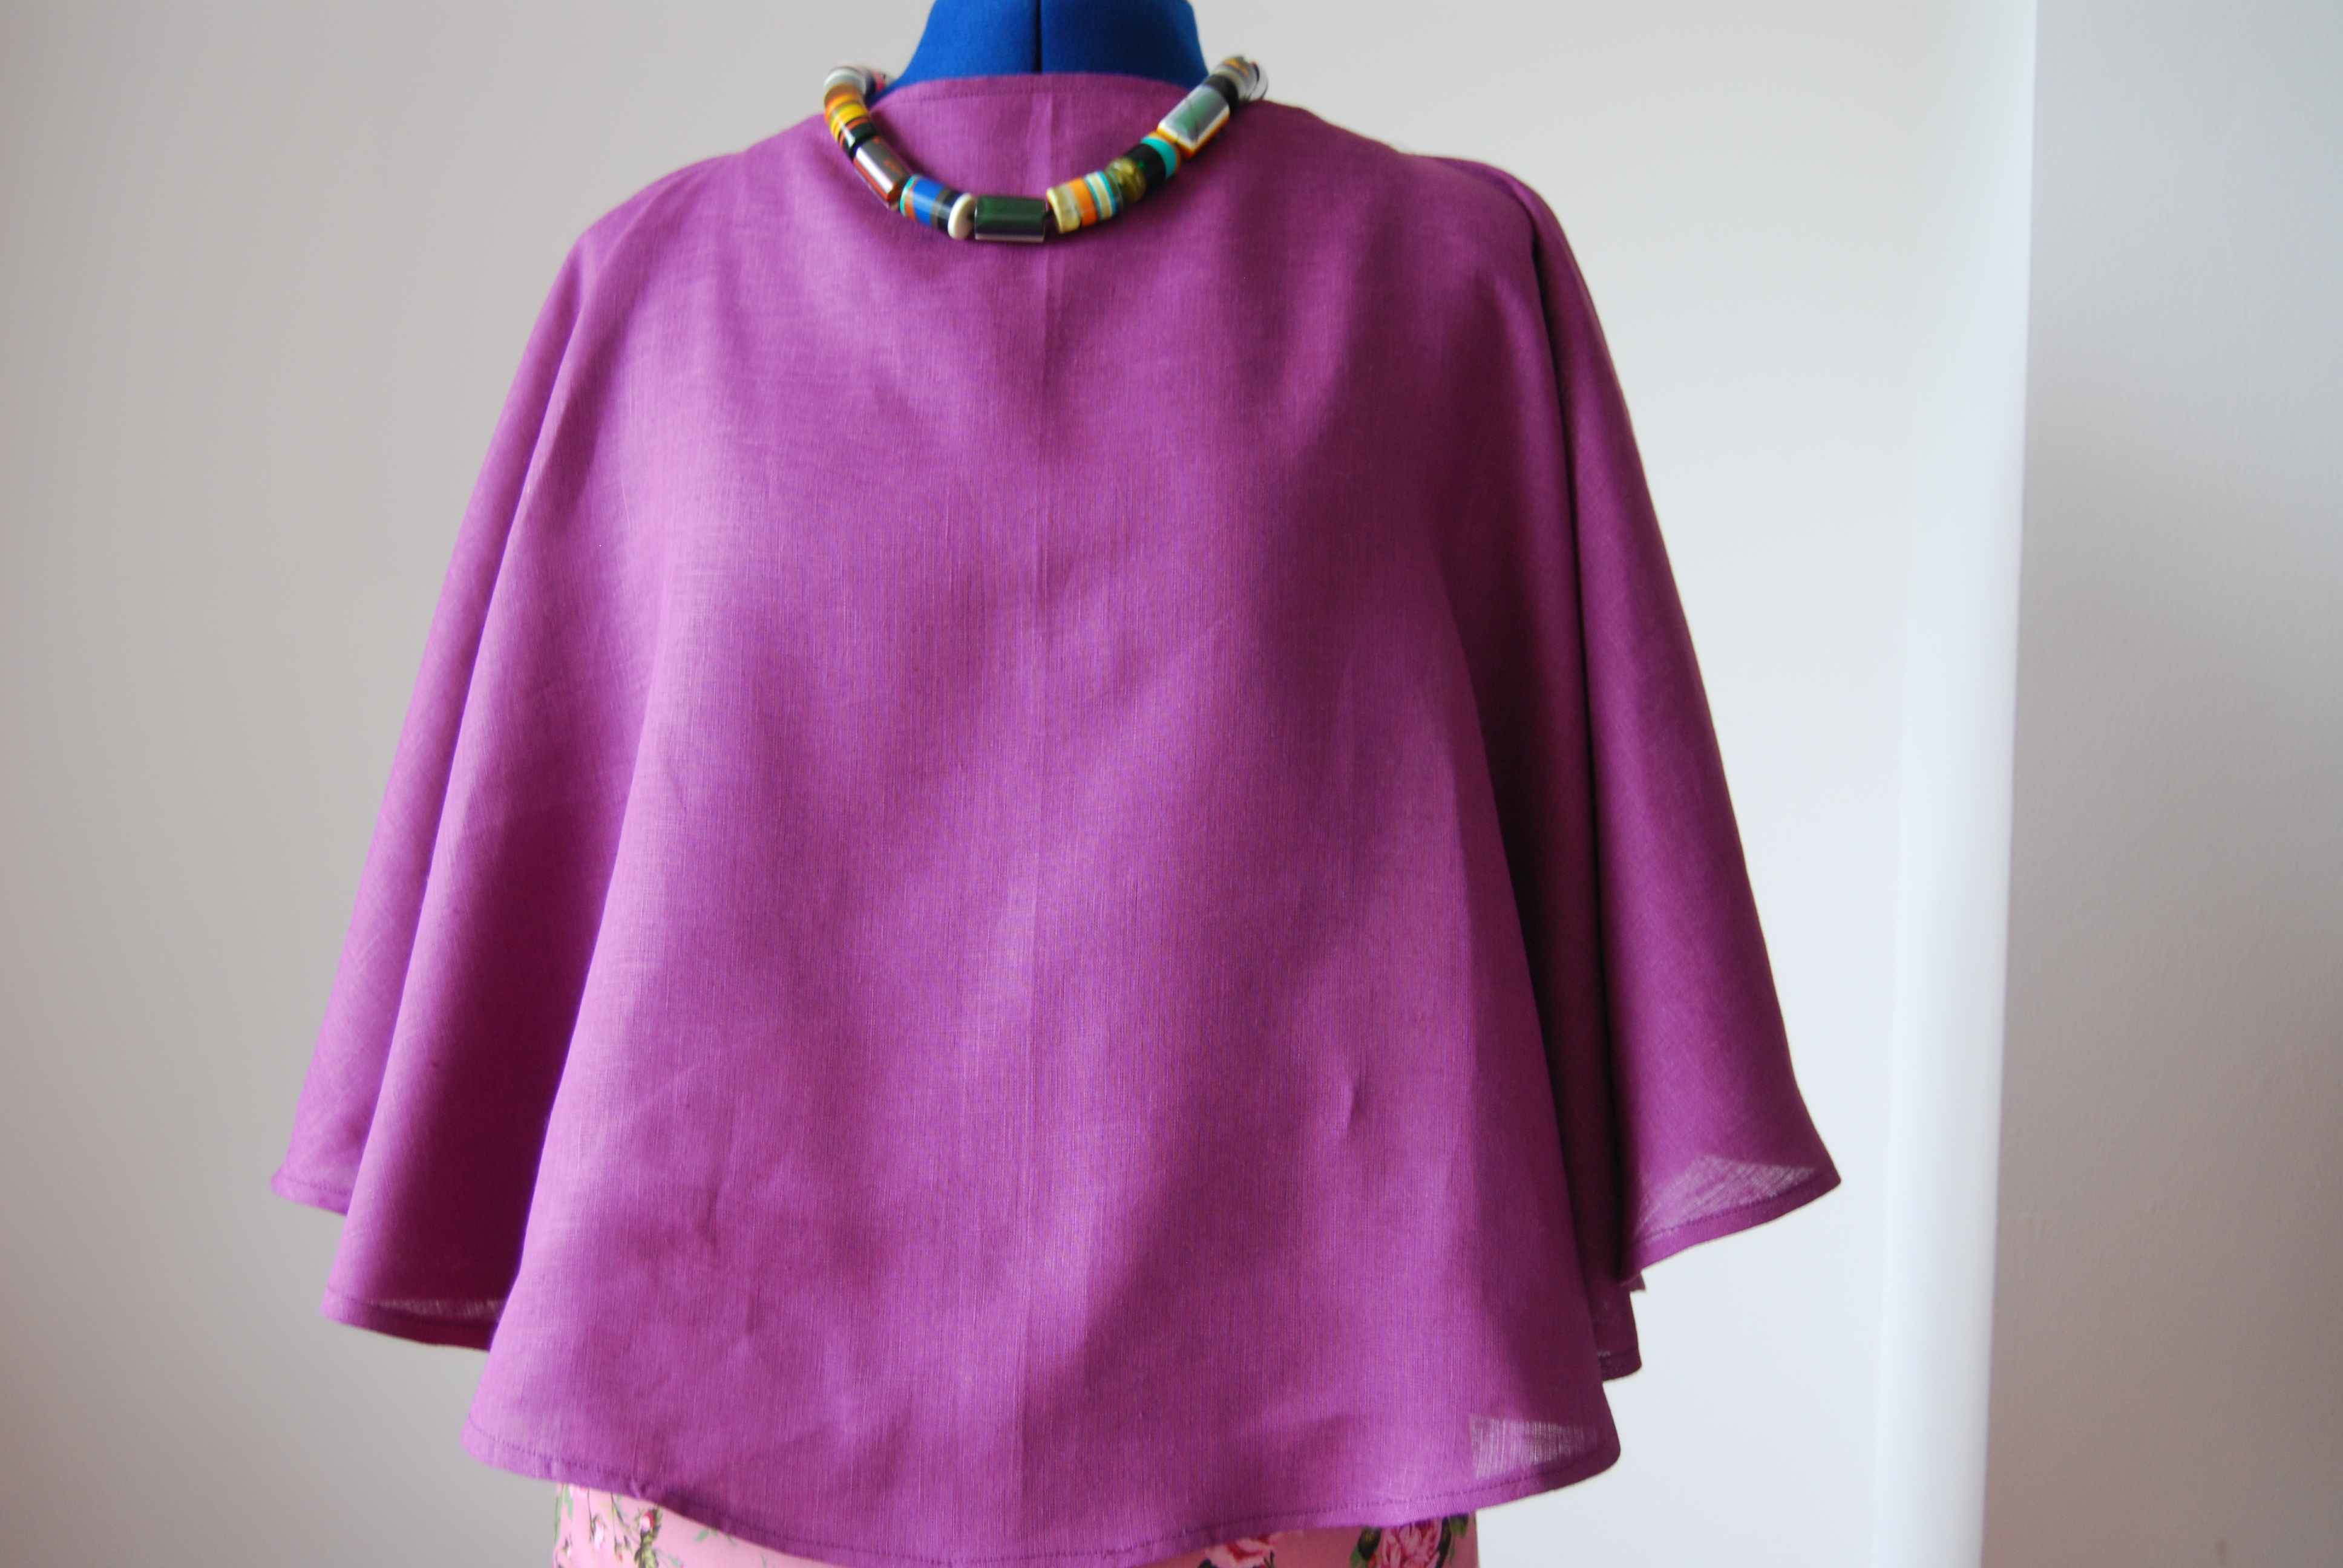 how to make a batwing top